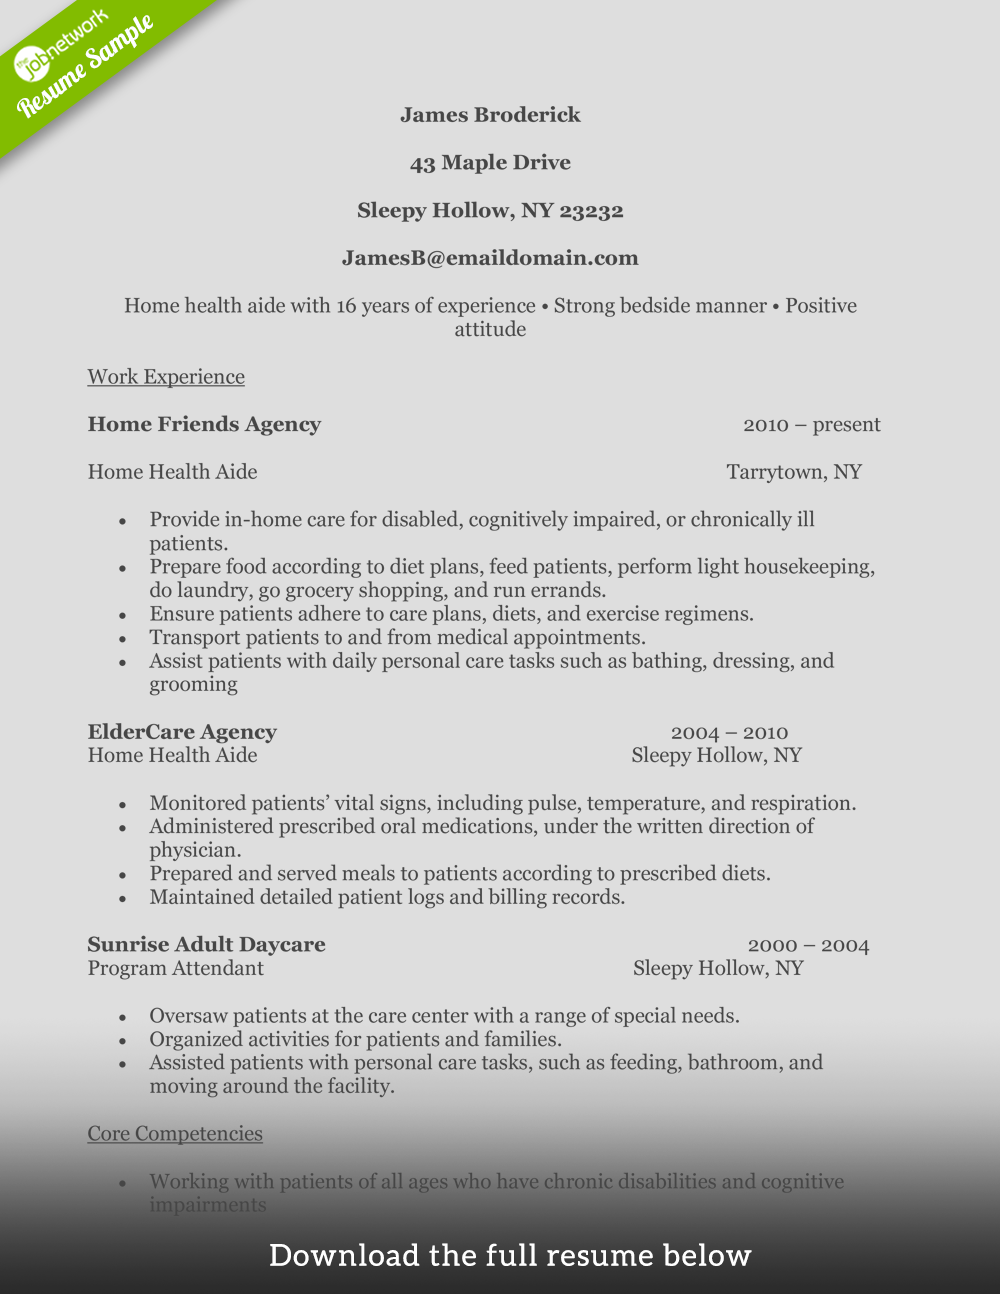 Home Health Aide Resume Experiencedl